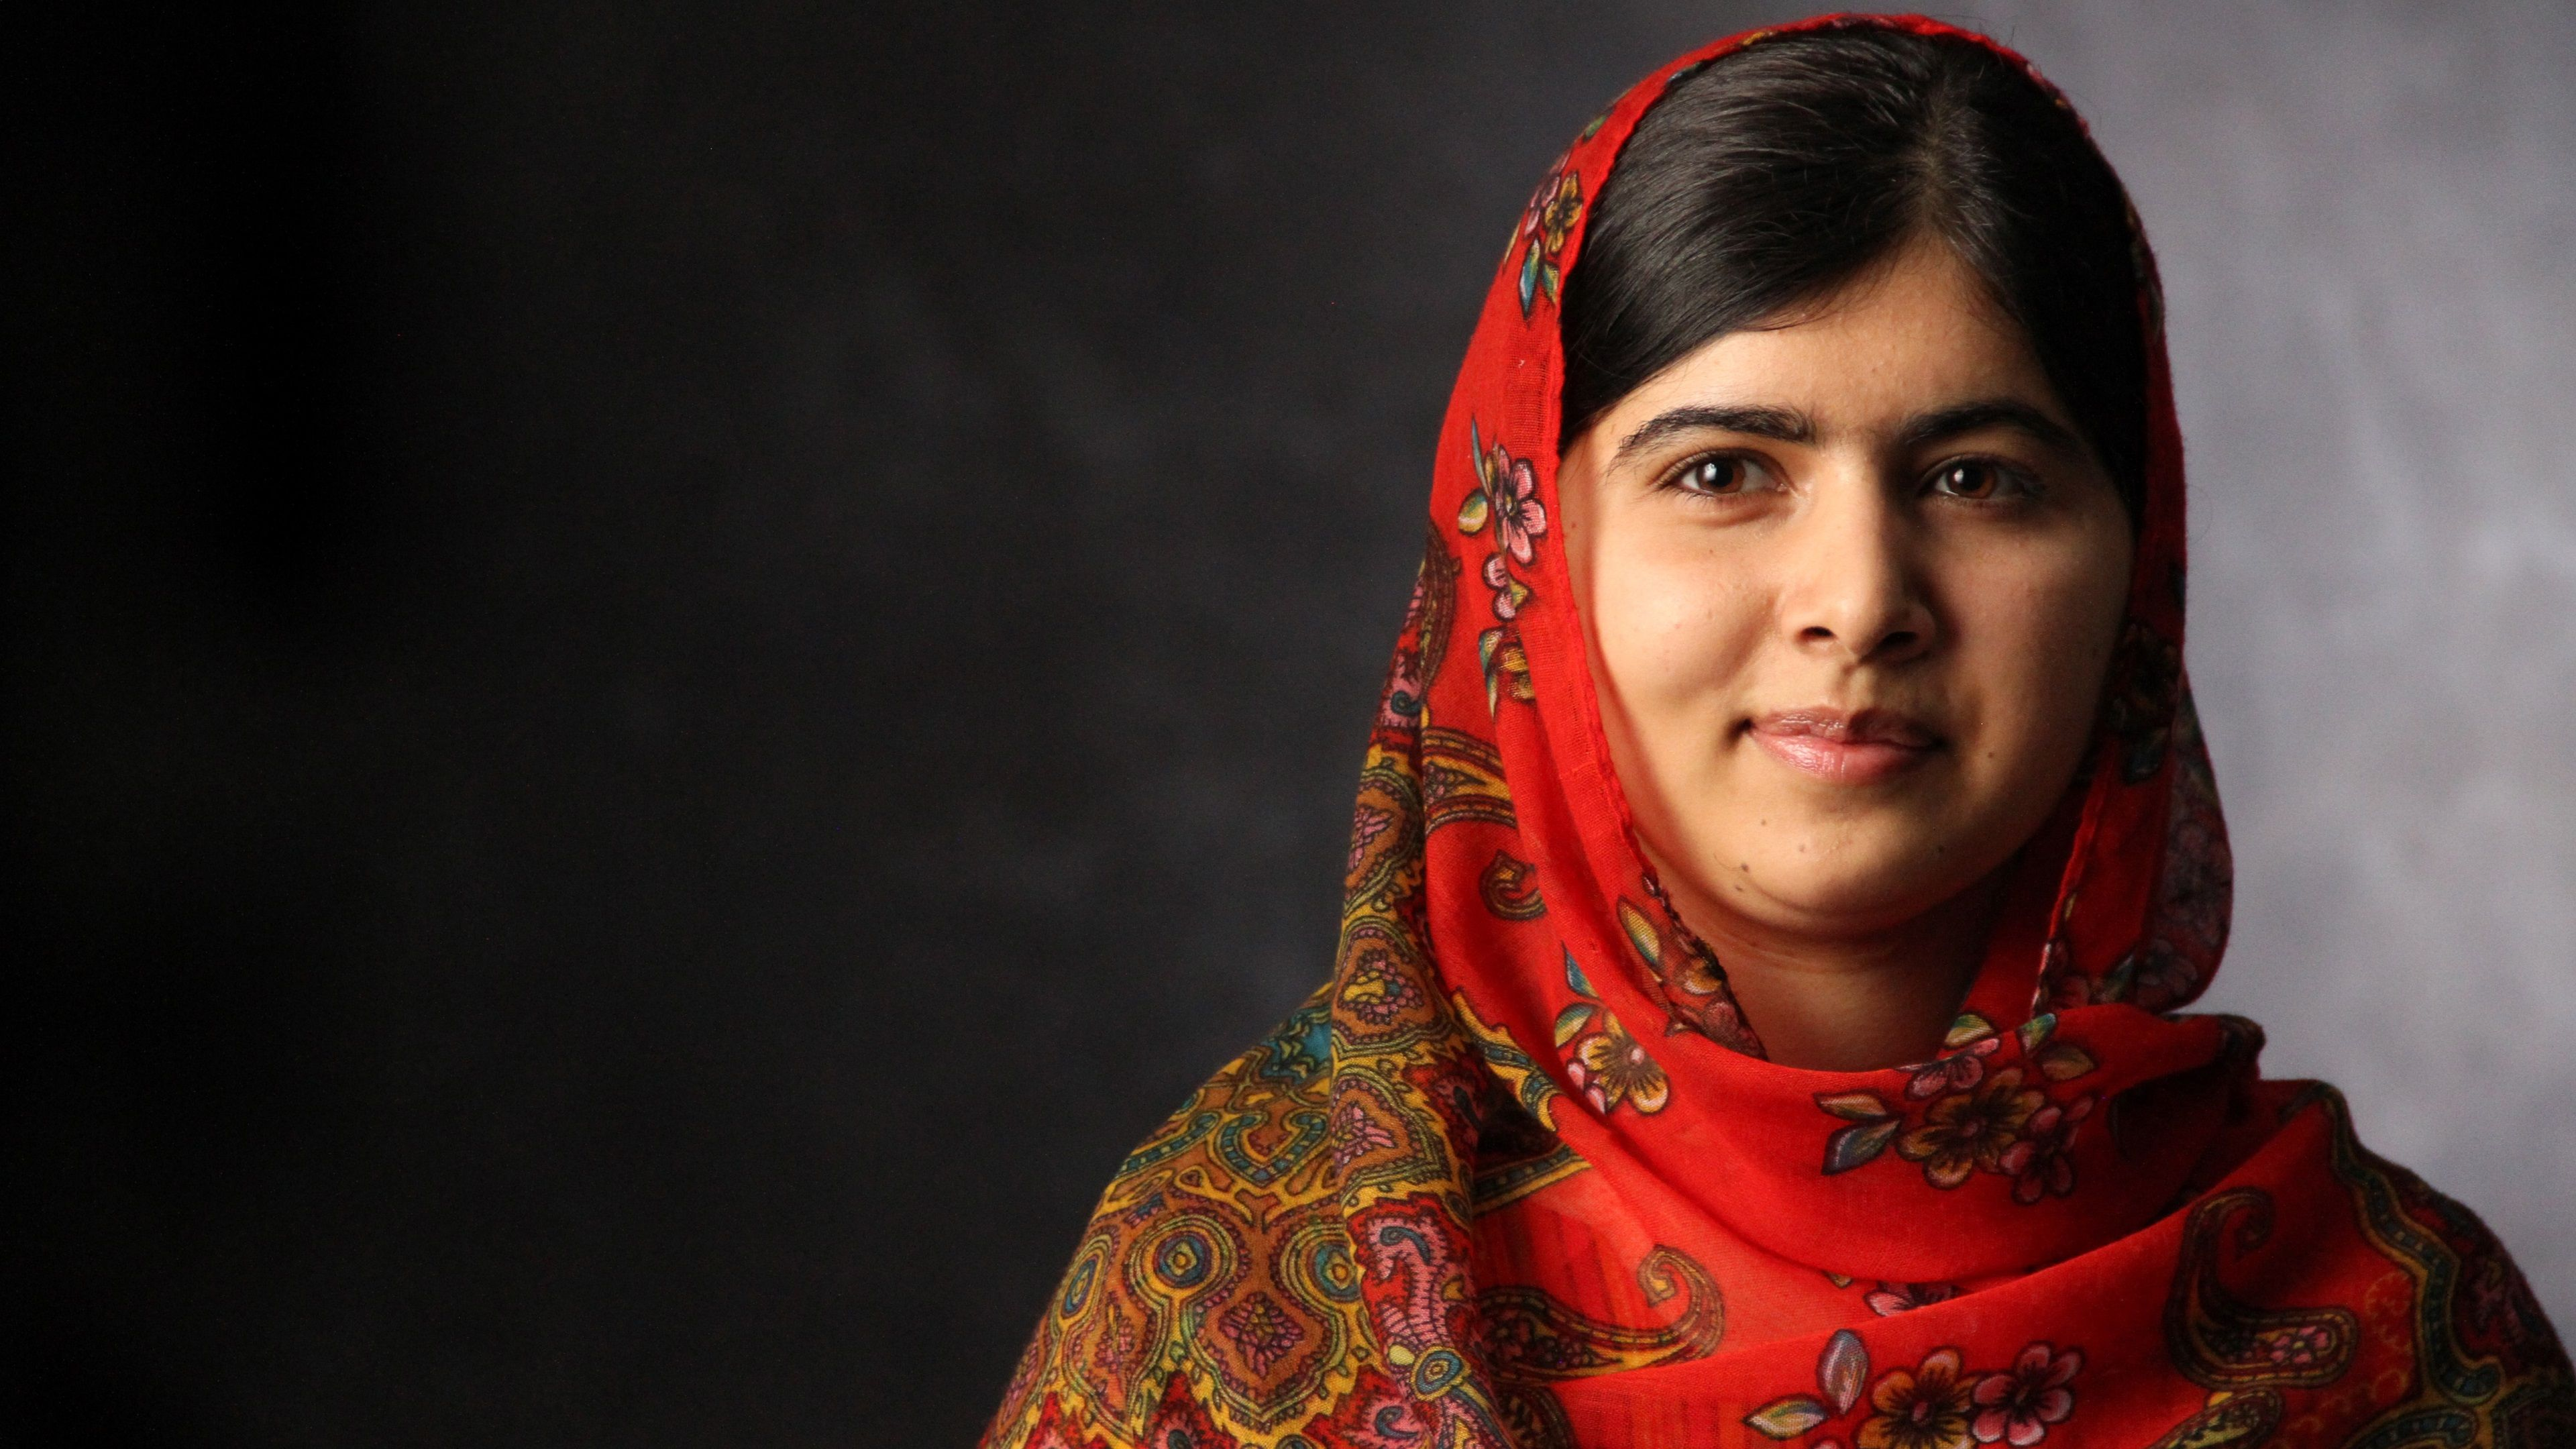 3840x2160 malala yousafzai 4k hd wallpaper